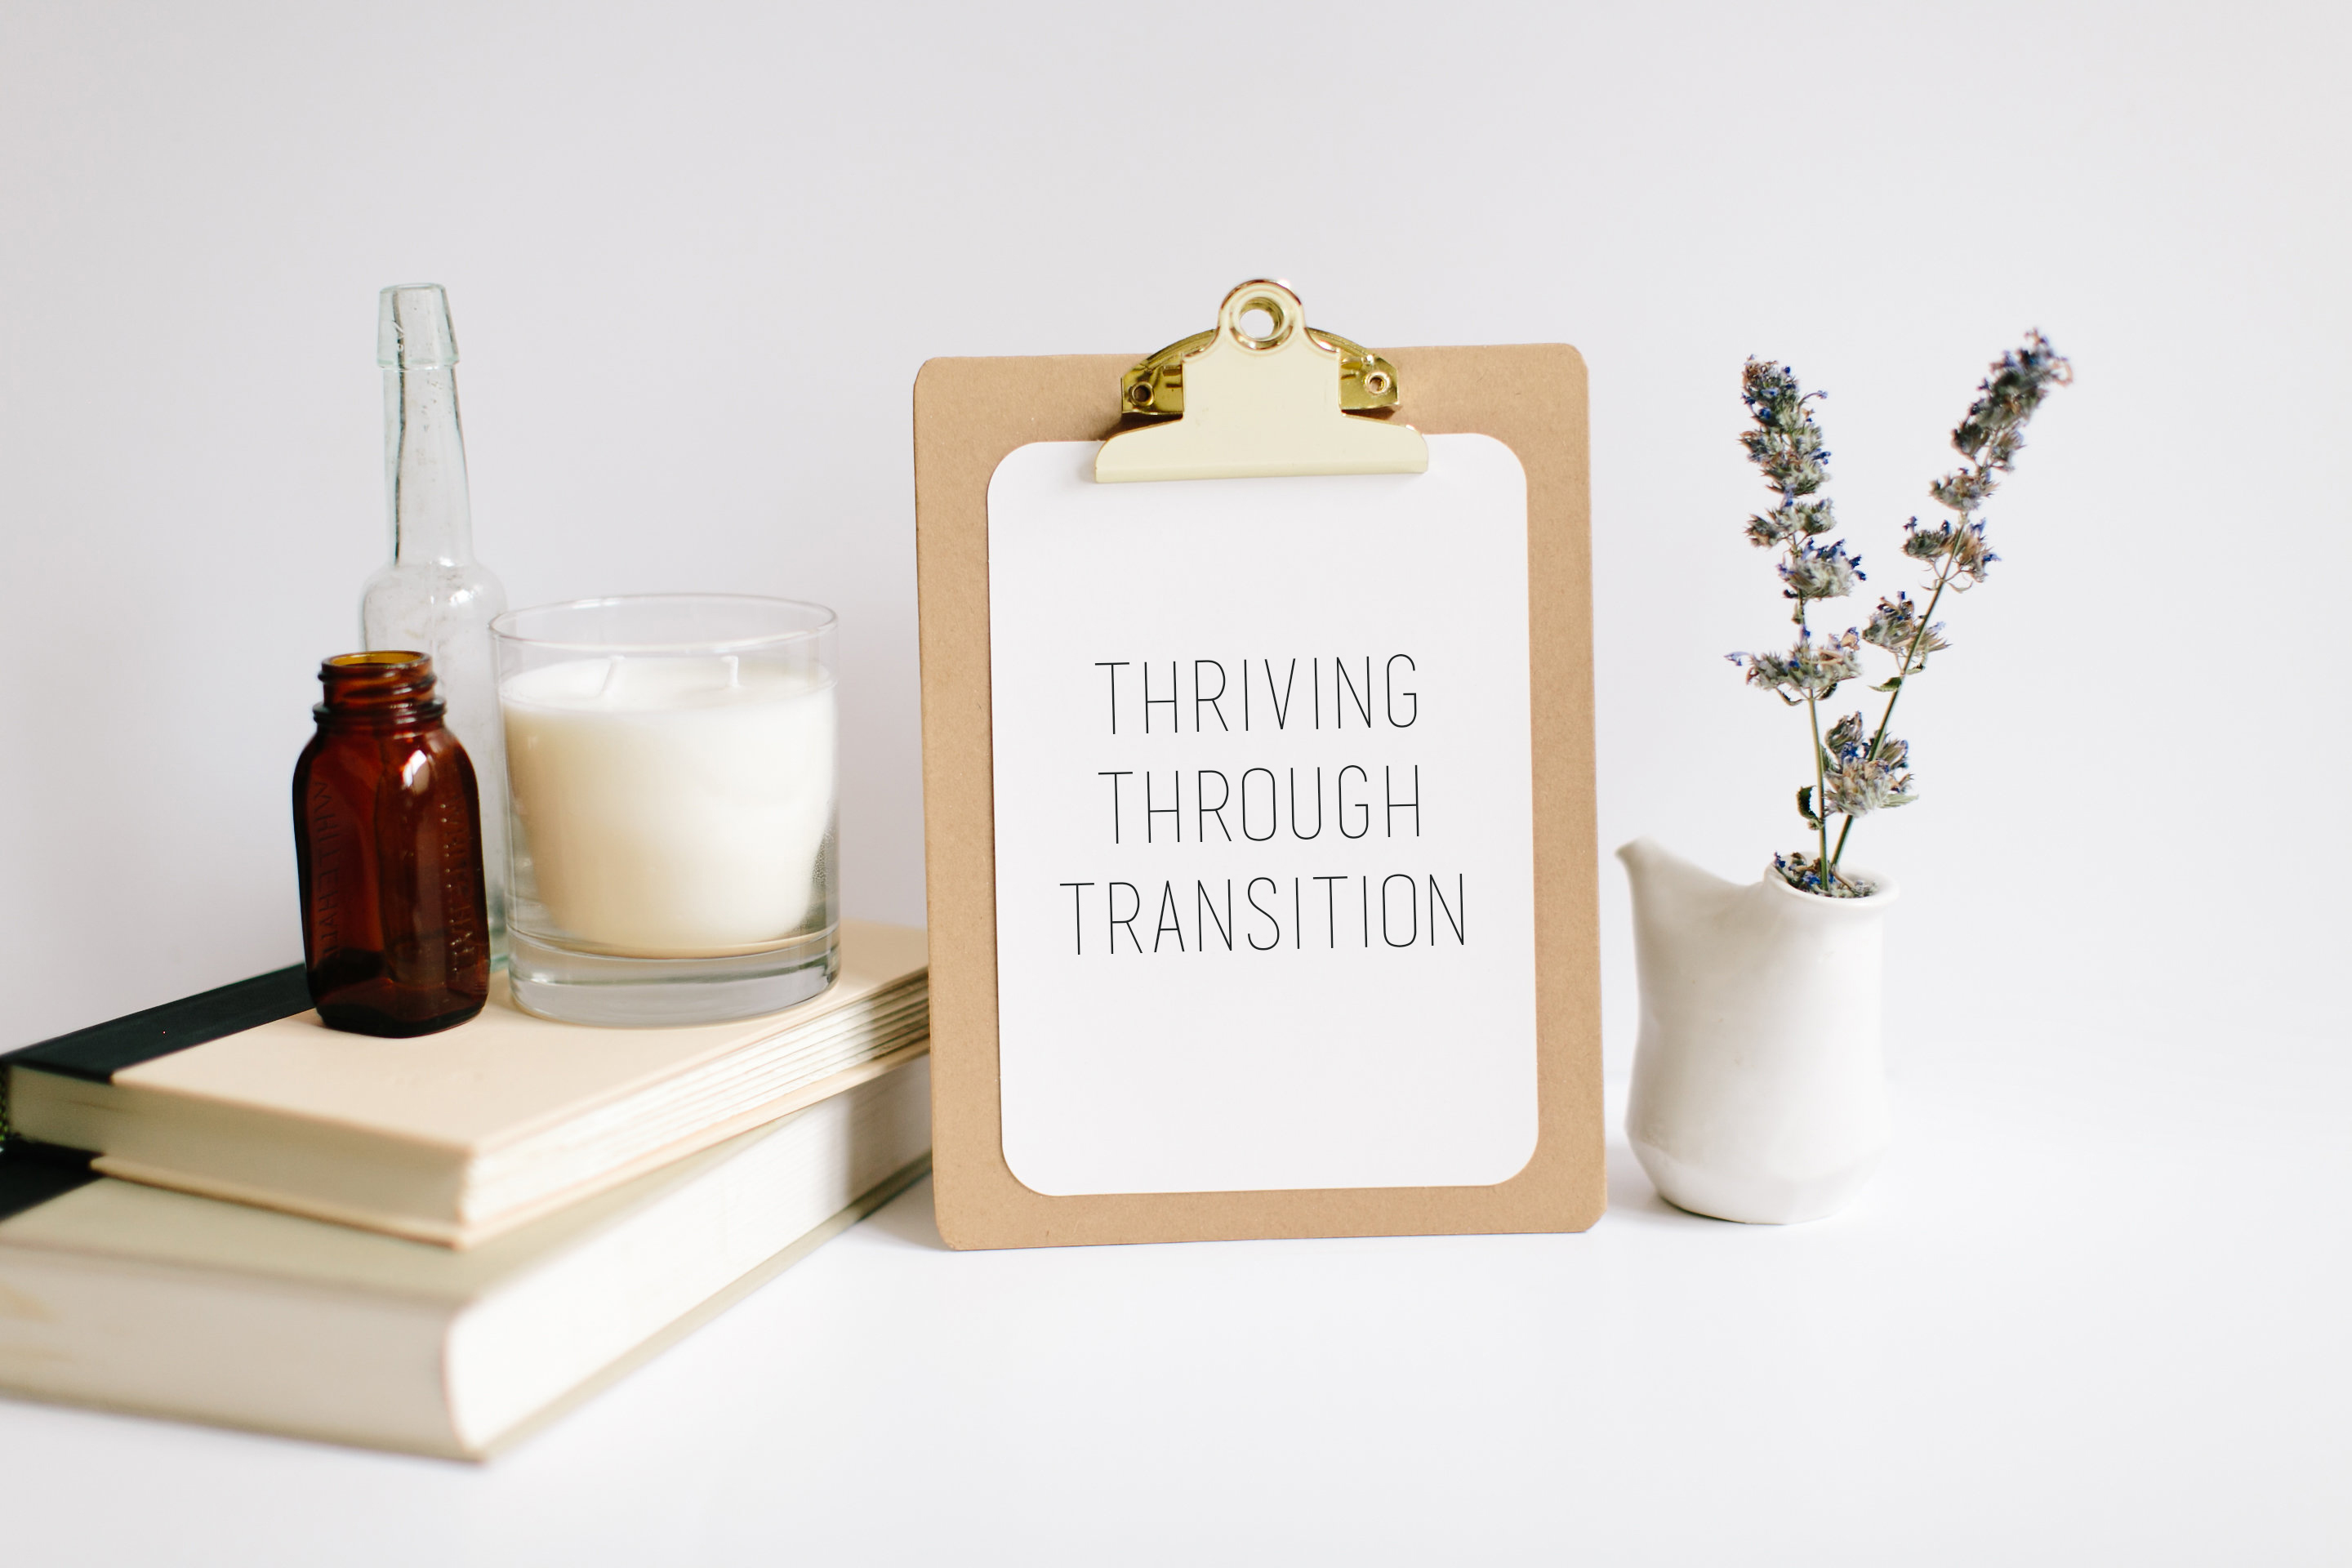 Thriving Through Transition